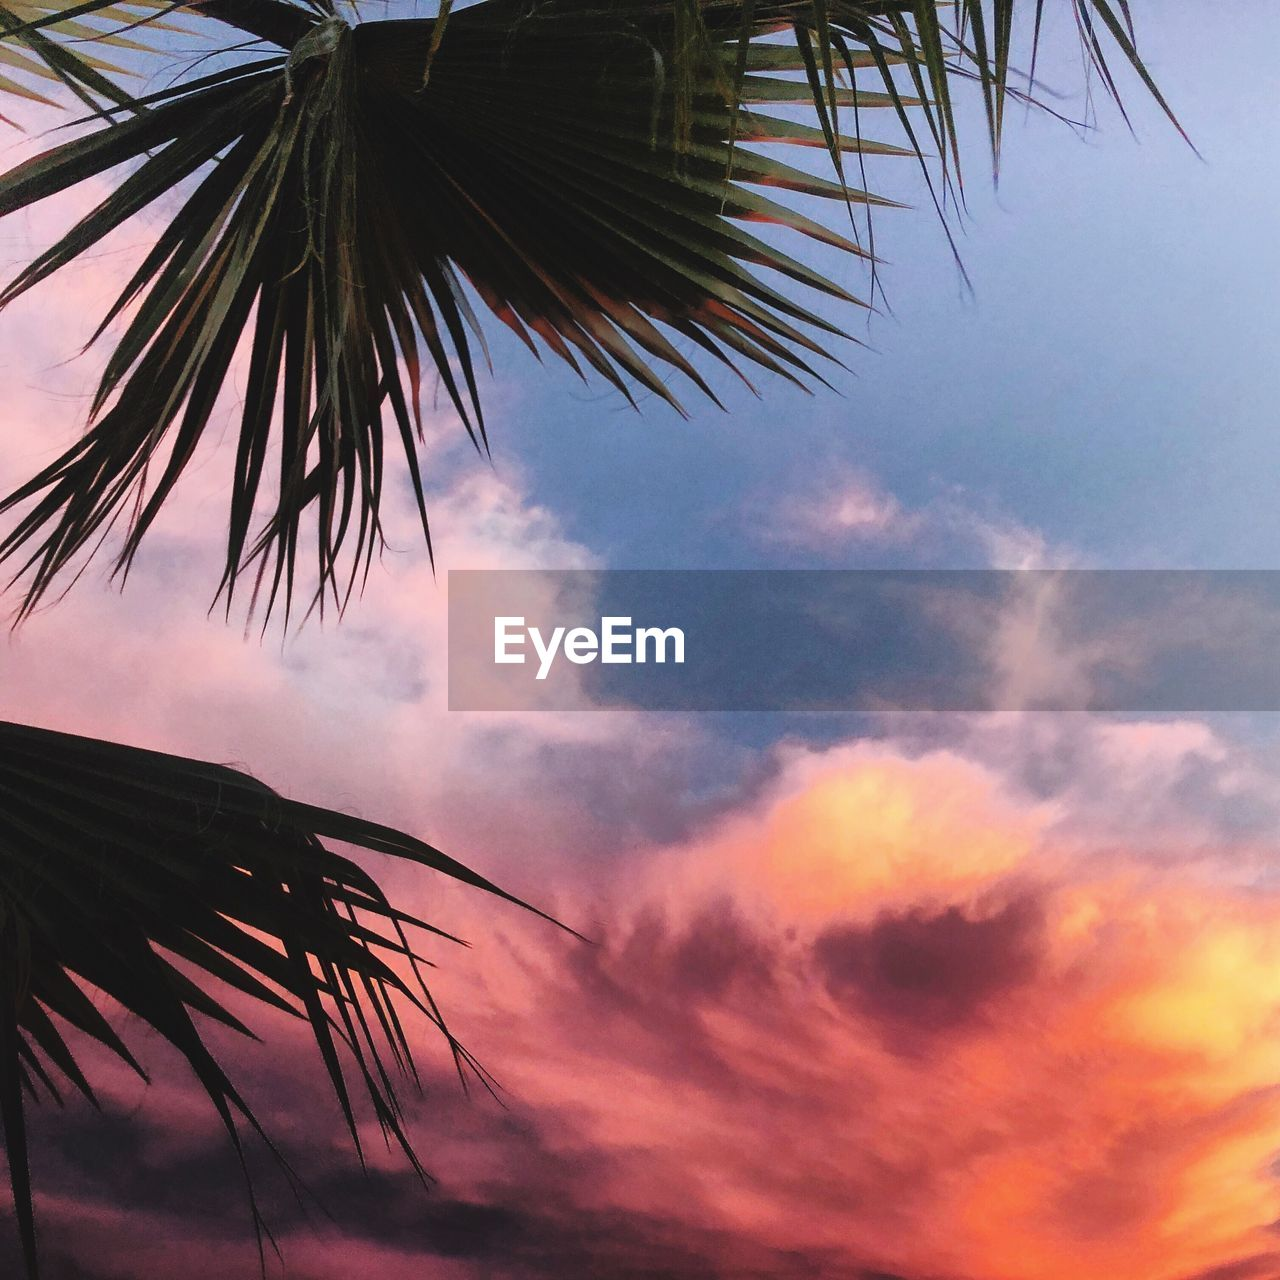 sky, cloud - sky, palm tree, beauty in nature, plant, growth, low angle view, no people, tropical climate, nature, sunset, palm leaf, tree, tranquility, leaf, tranquil scene, scenics - nature, silhouette, outdoors, day, coconut palm tree